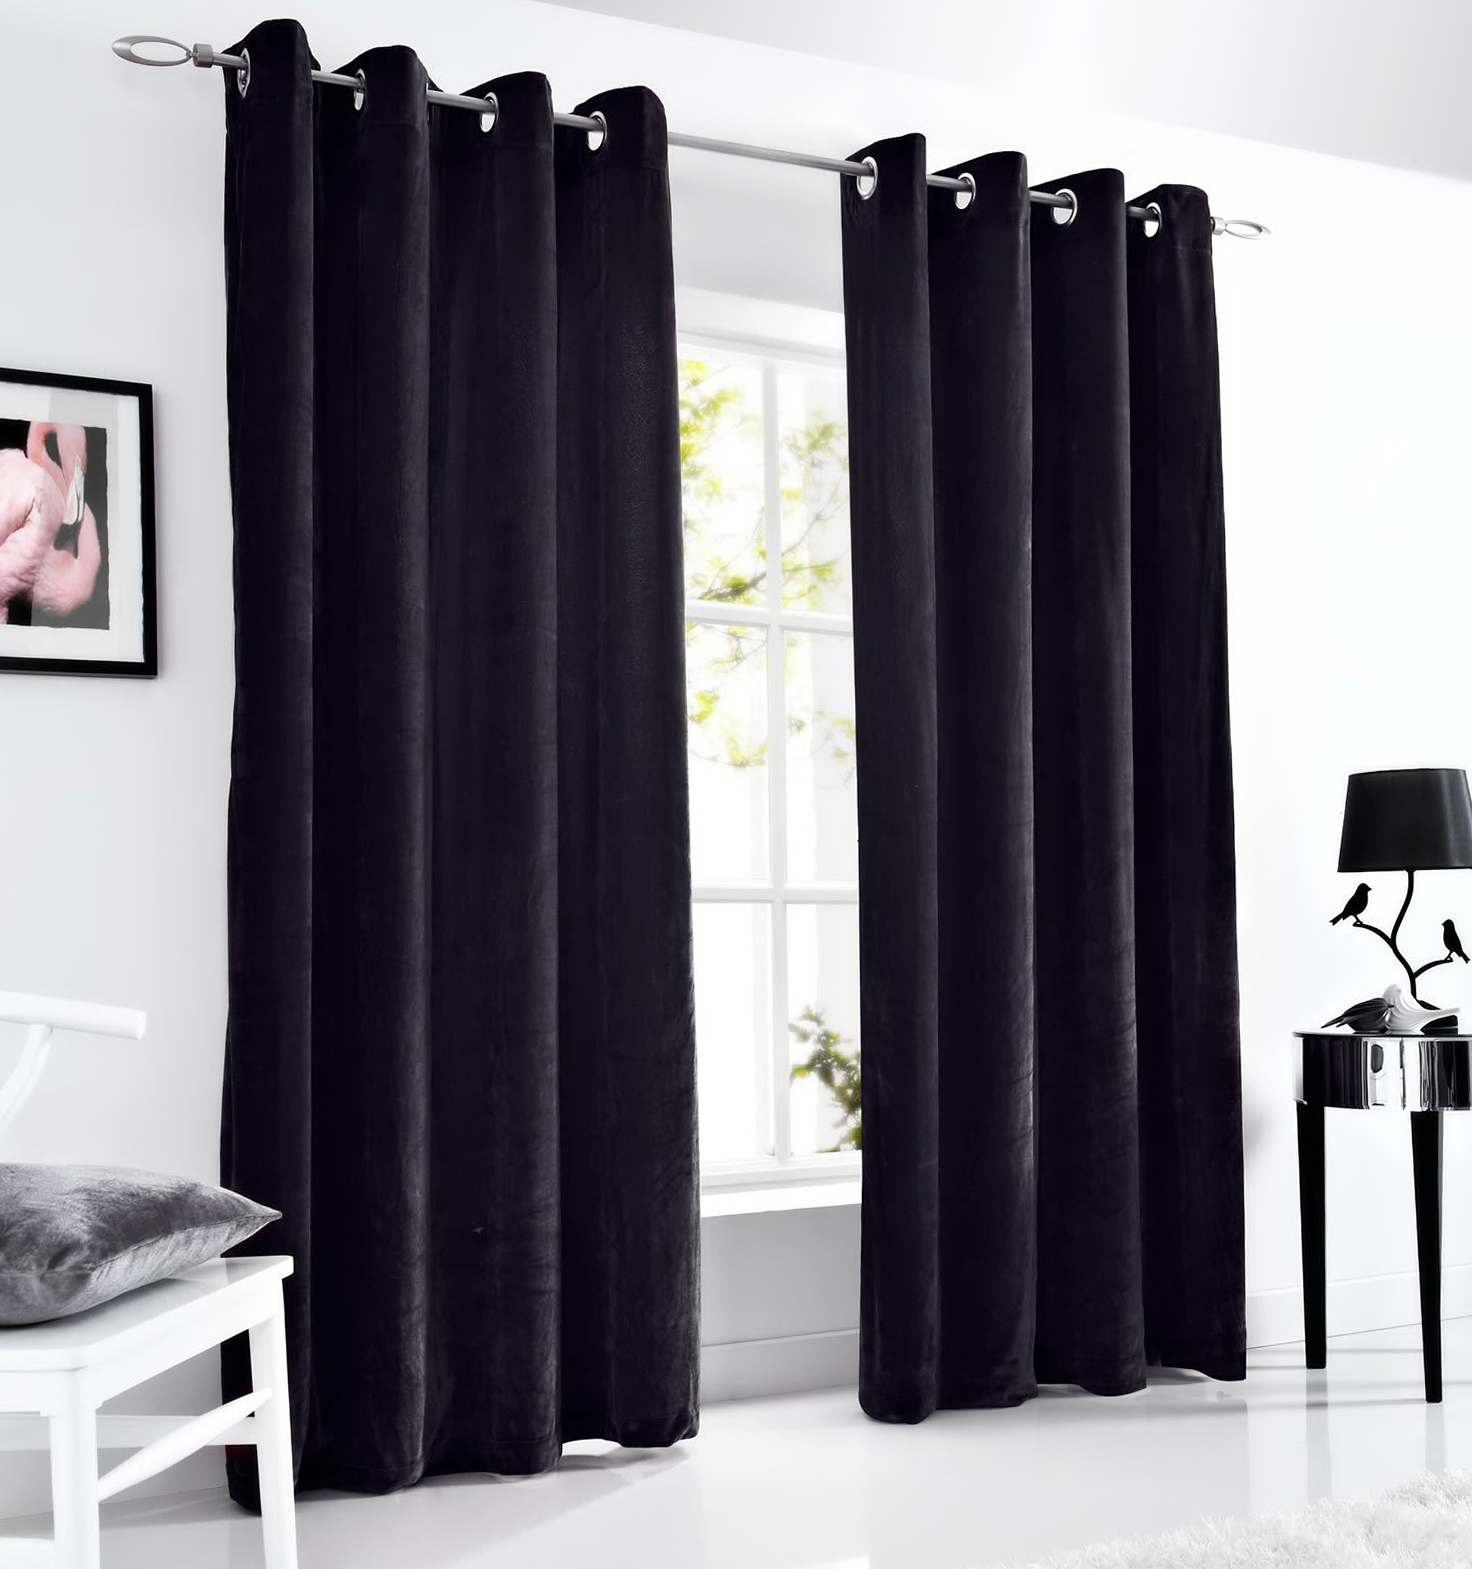 Black Velvet Curtains 90 215 90 Home Design Ideas